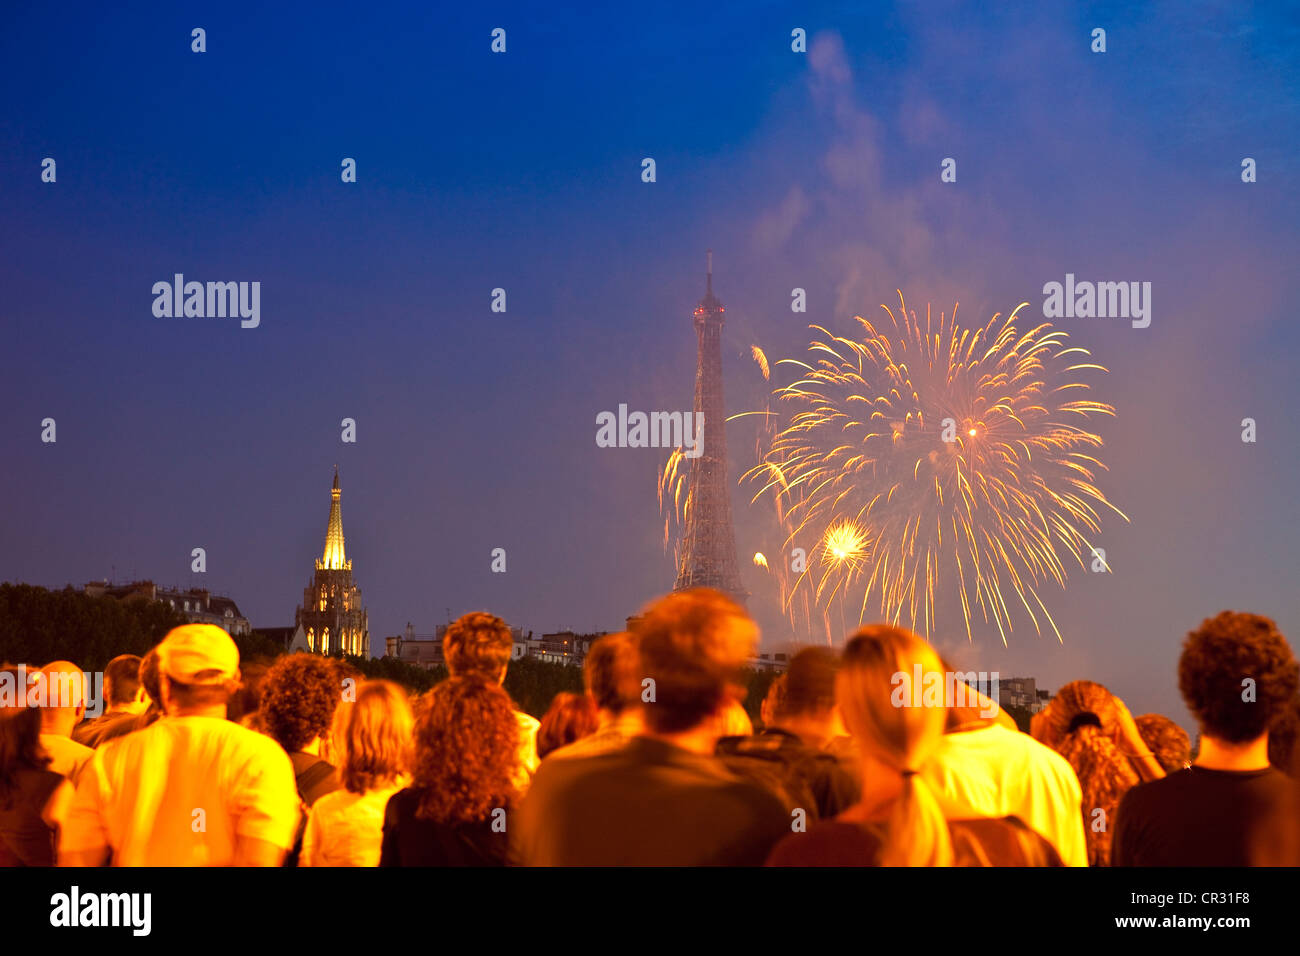 Bastille Day France Crowd Stock Photos   Bastille Day France Crowd     France  Paris  Bastille Day 2009 Fireworks   Stock Image